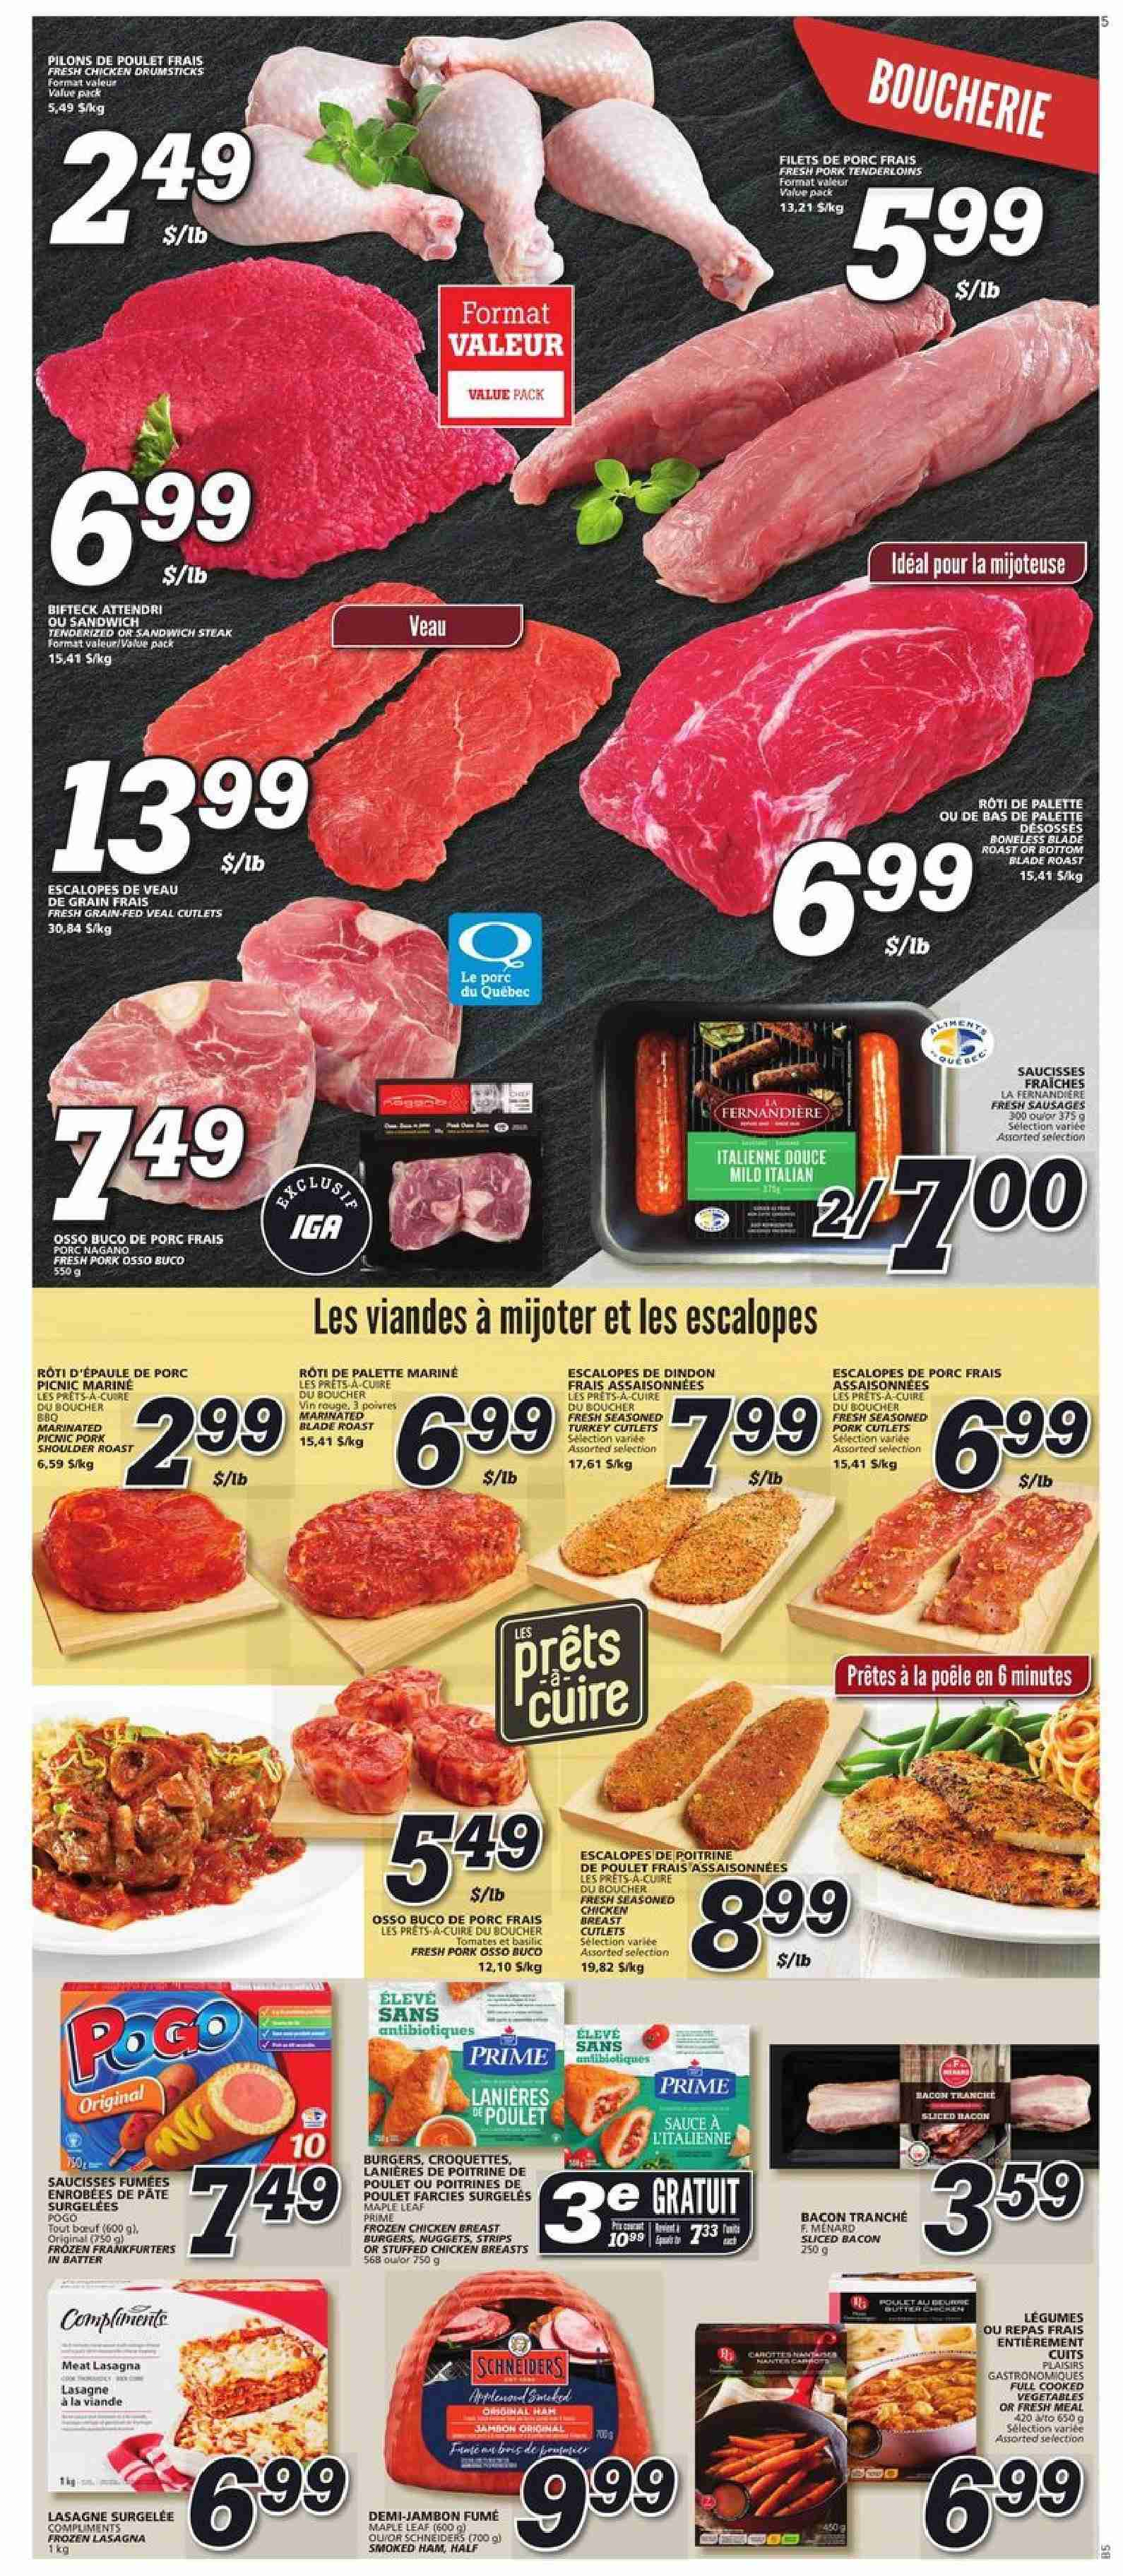 IGA Flyer  - January 10, 2019 - January 16, 2019. Page 3.